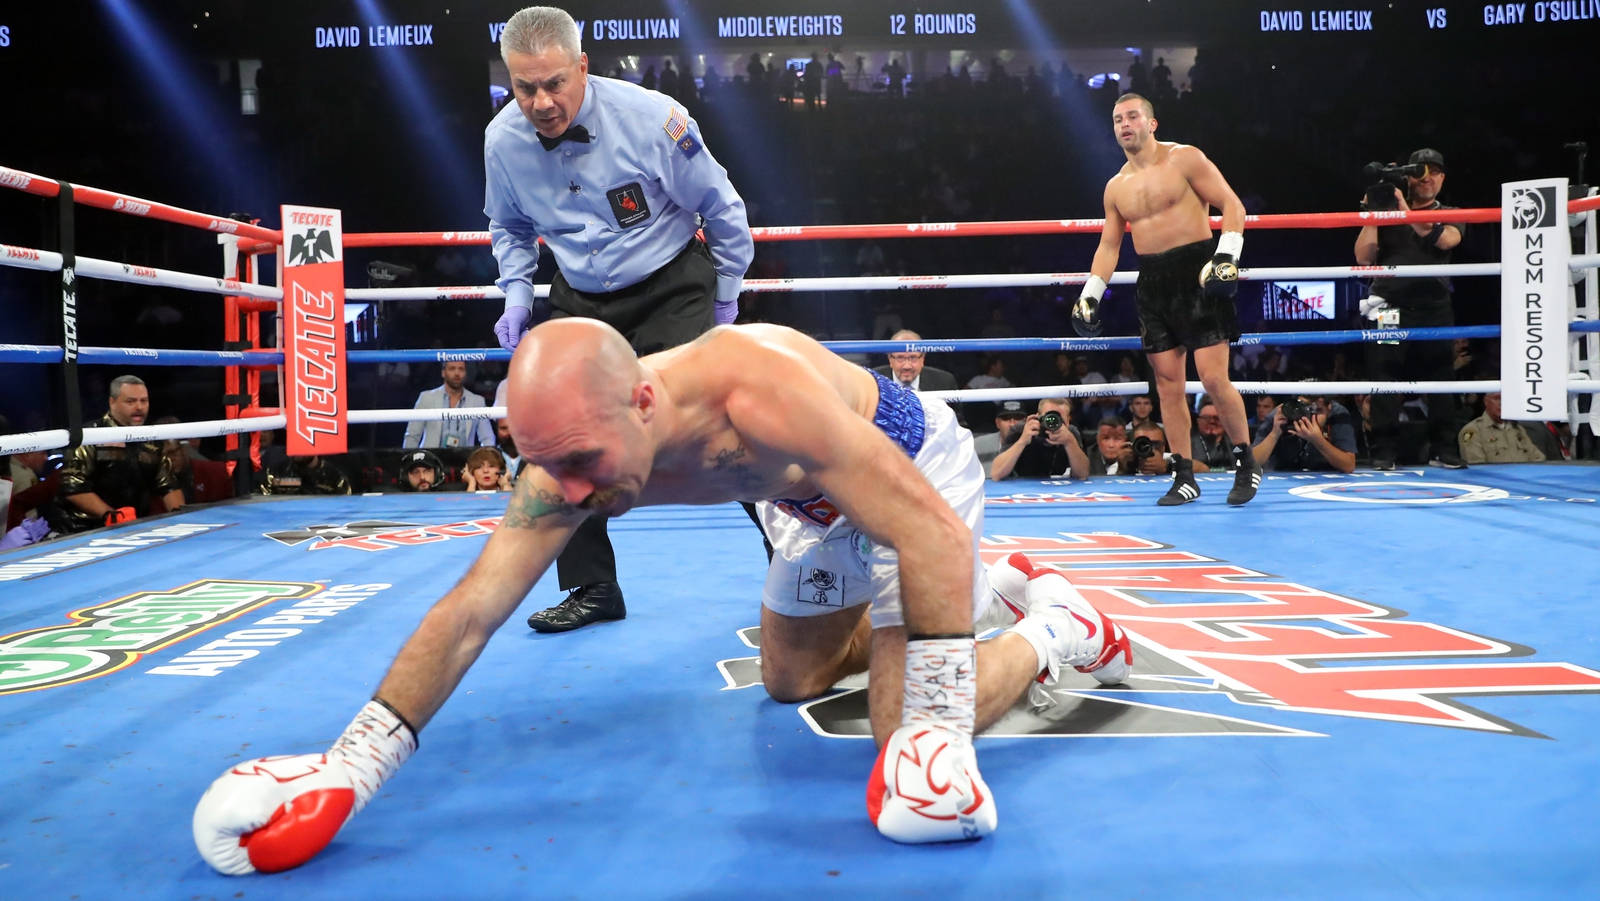 Spike O & Sullivan stopped in Lemieux in Las Vegas in the first round